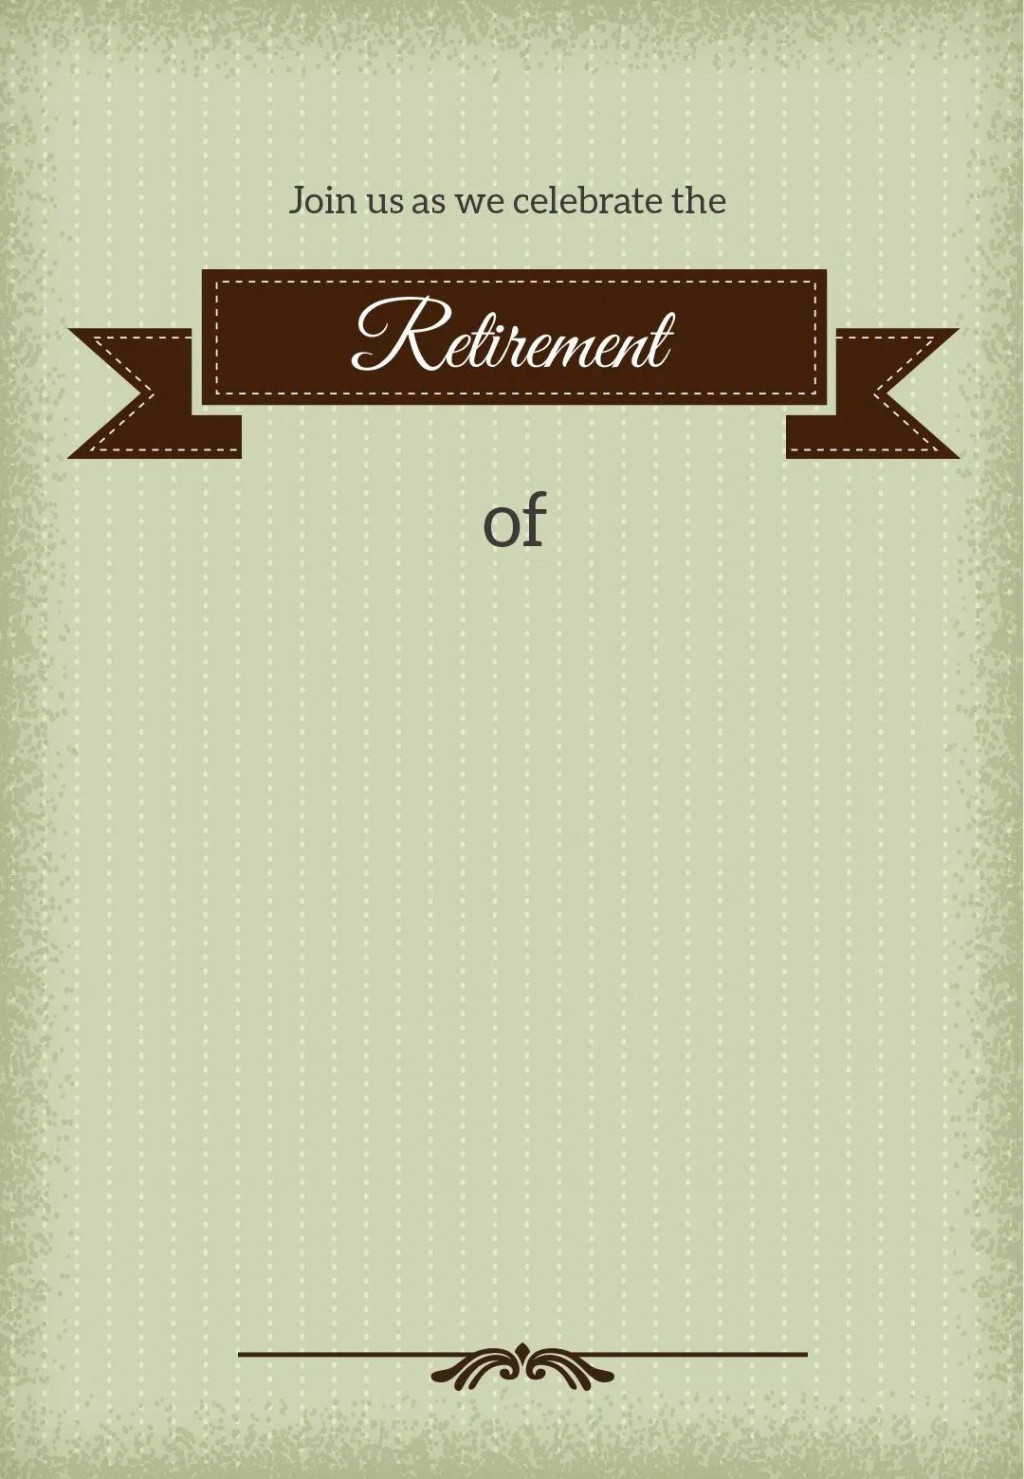 009 Magnificent Free Retirement Invitation Template Highest Clarity  Templates Microsoft Word Party FlyerLarge